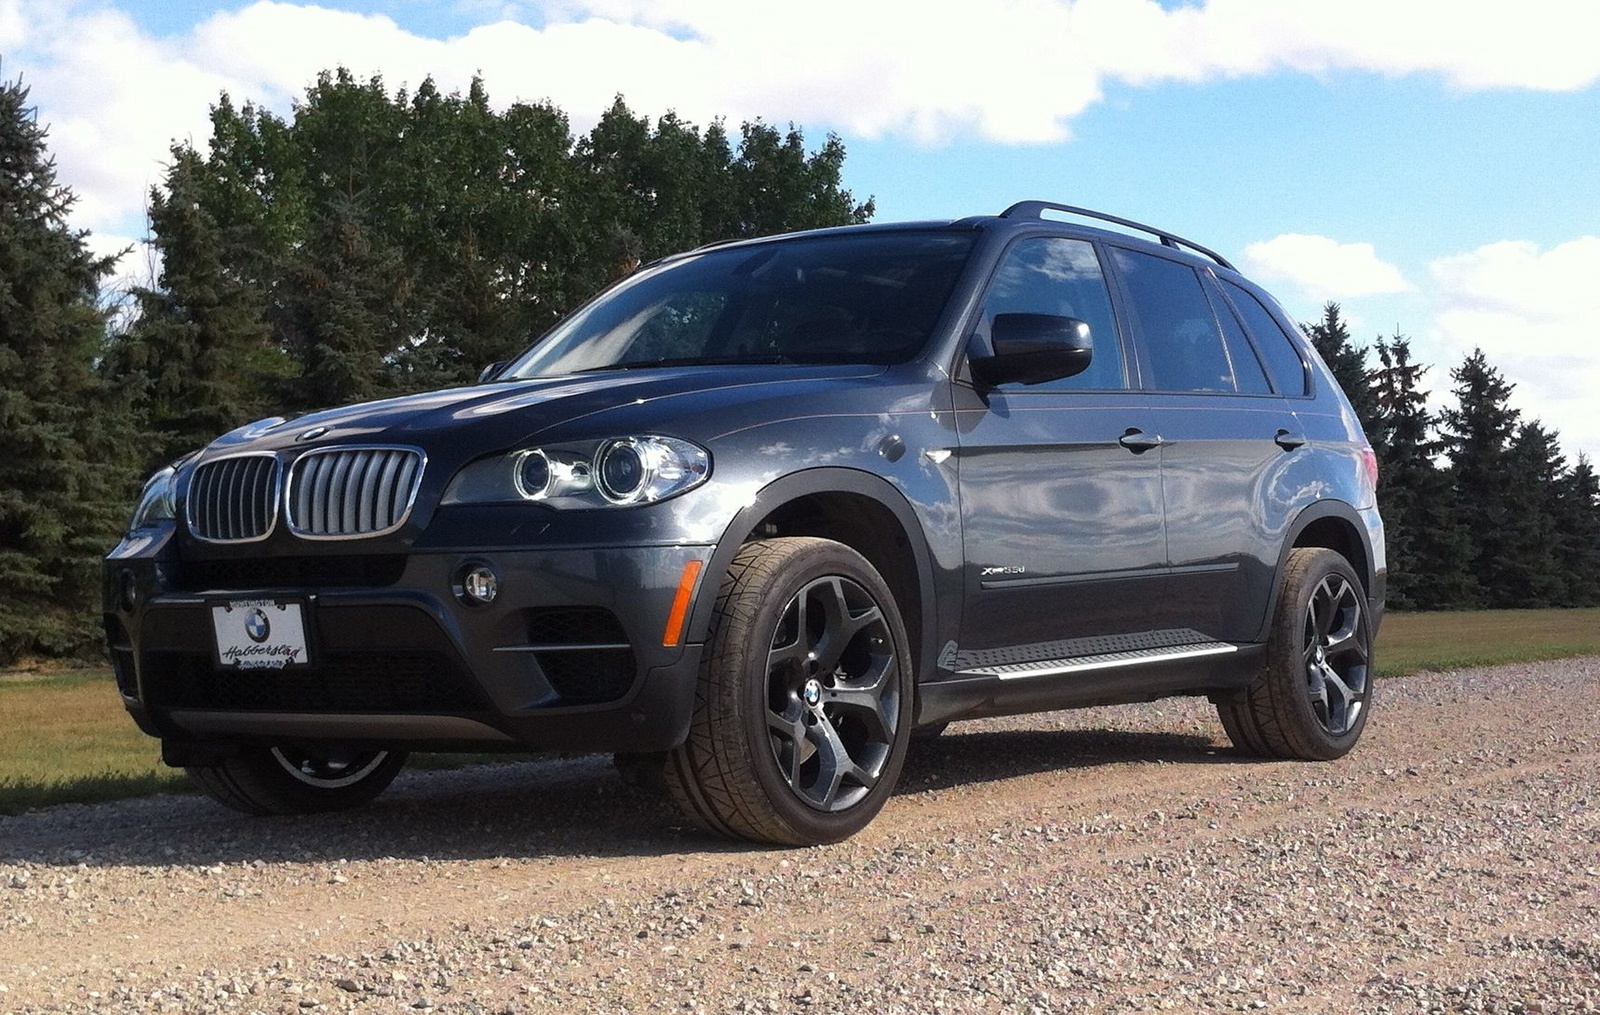 bmw x3 xdrive35i 2011 picture best free home design idea inspiration. Black Bedroom Furniture Sets. Home Design Ideas